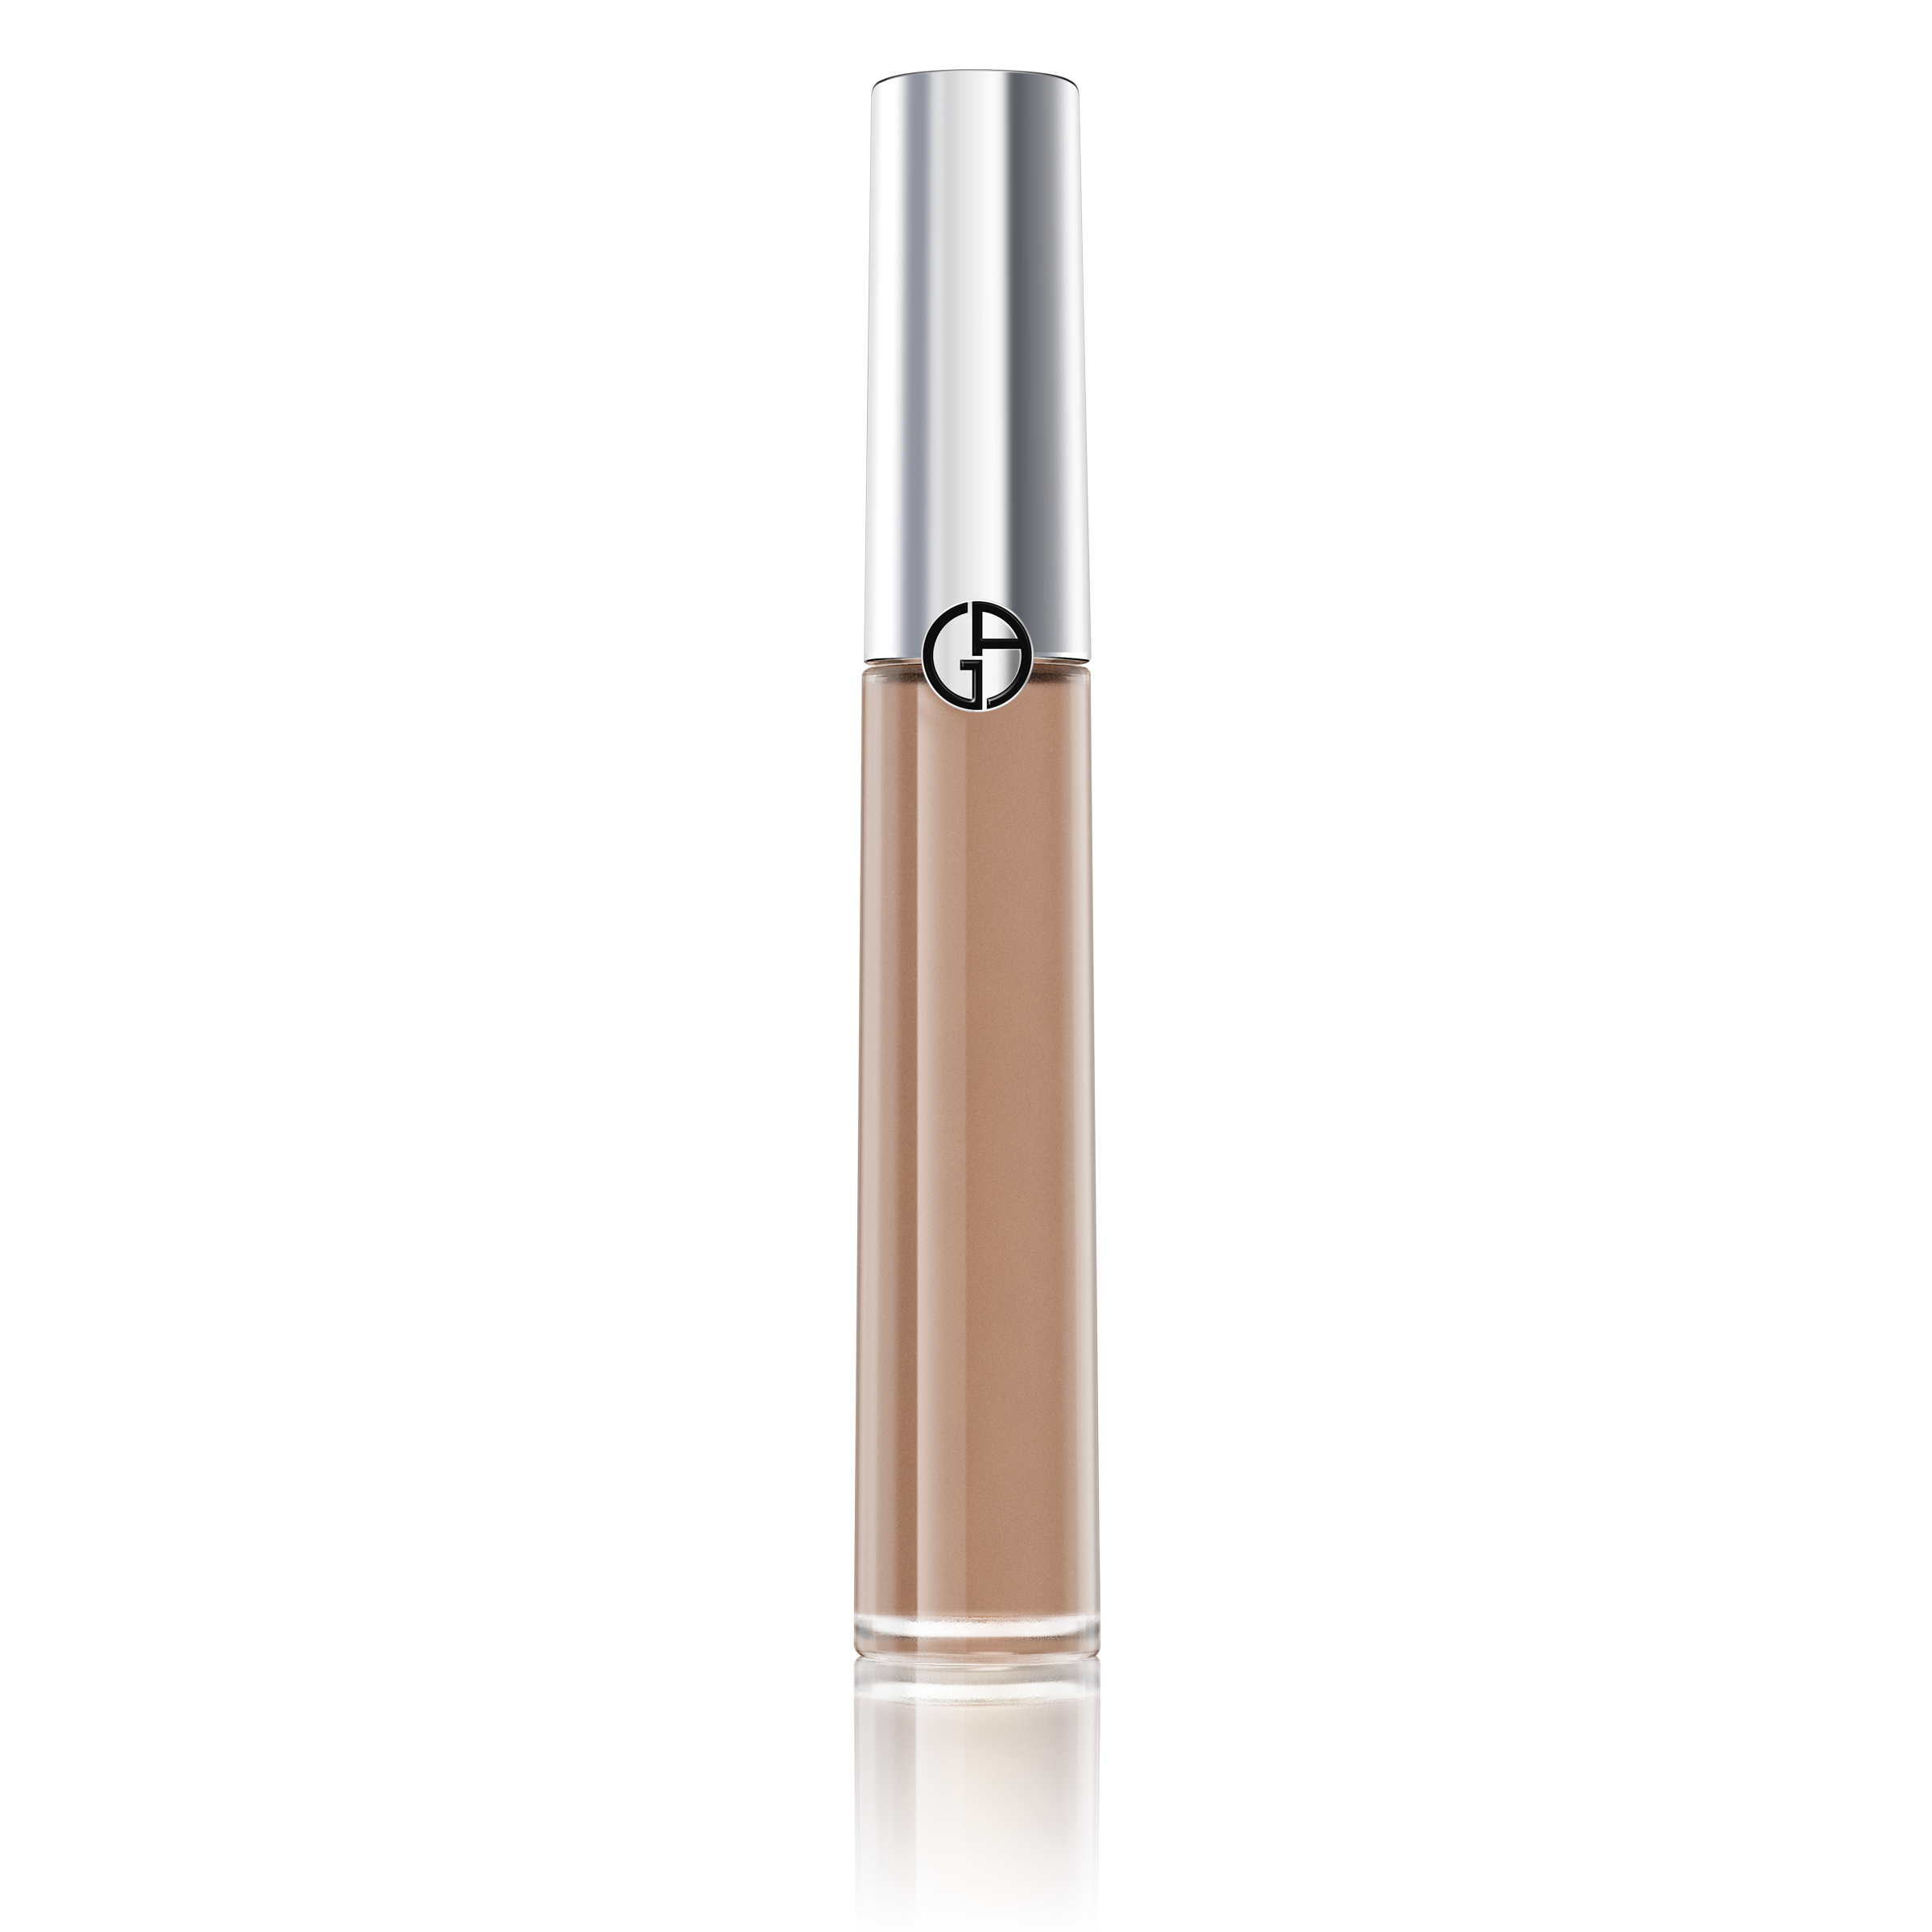 NEW Giorgio Armani EYE TINT SMOKY NEUTRAL Collection